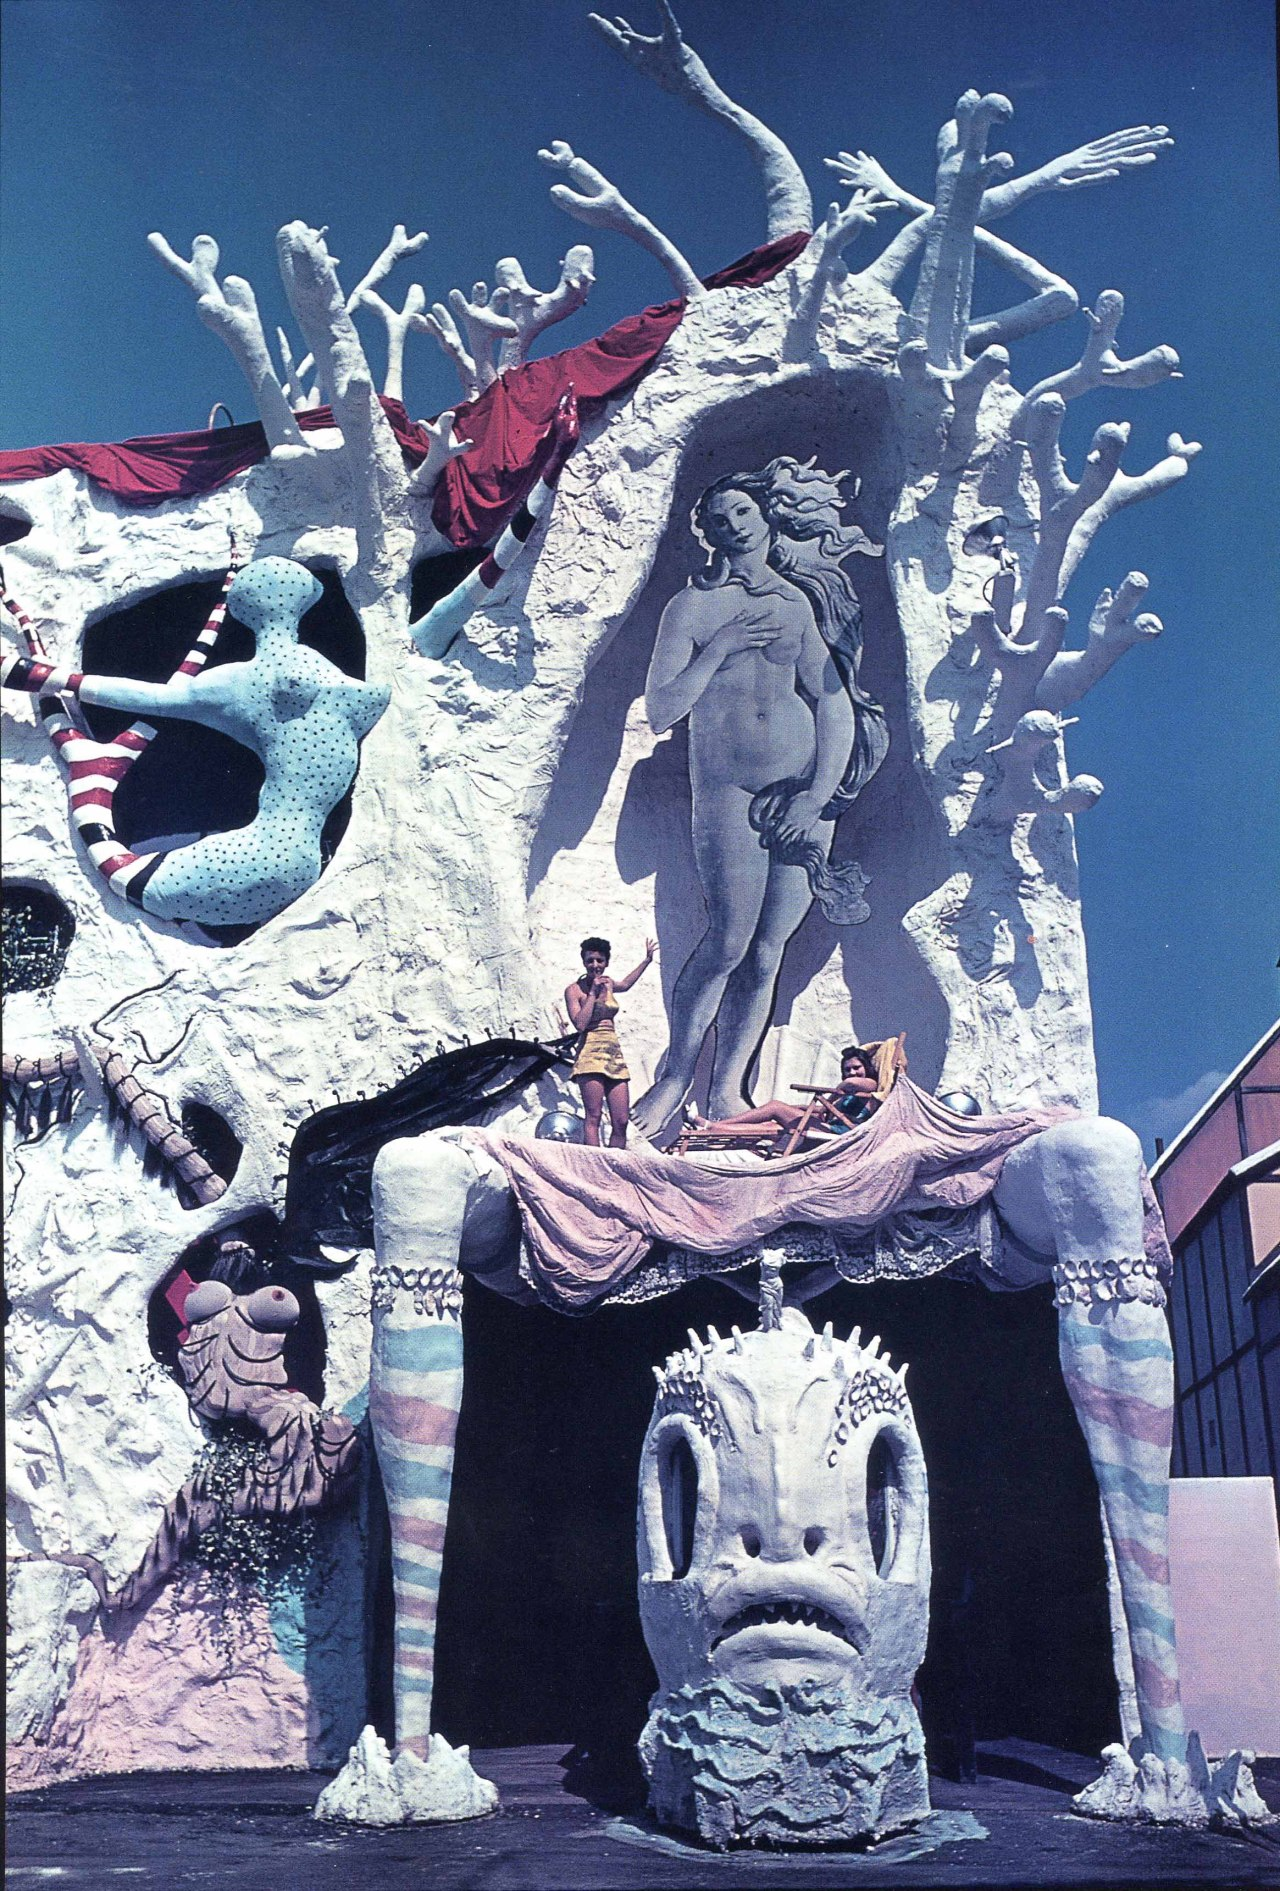 wandrlust:  Salvador Dalí's Dream of Venus pavilion for the 1939 World's Fair.